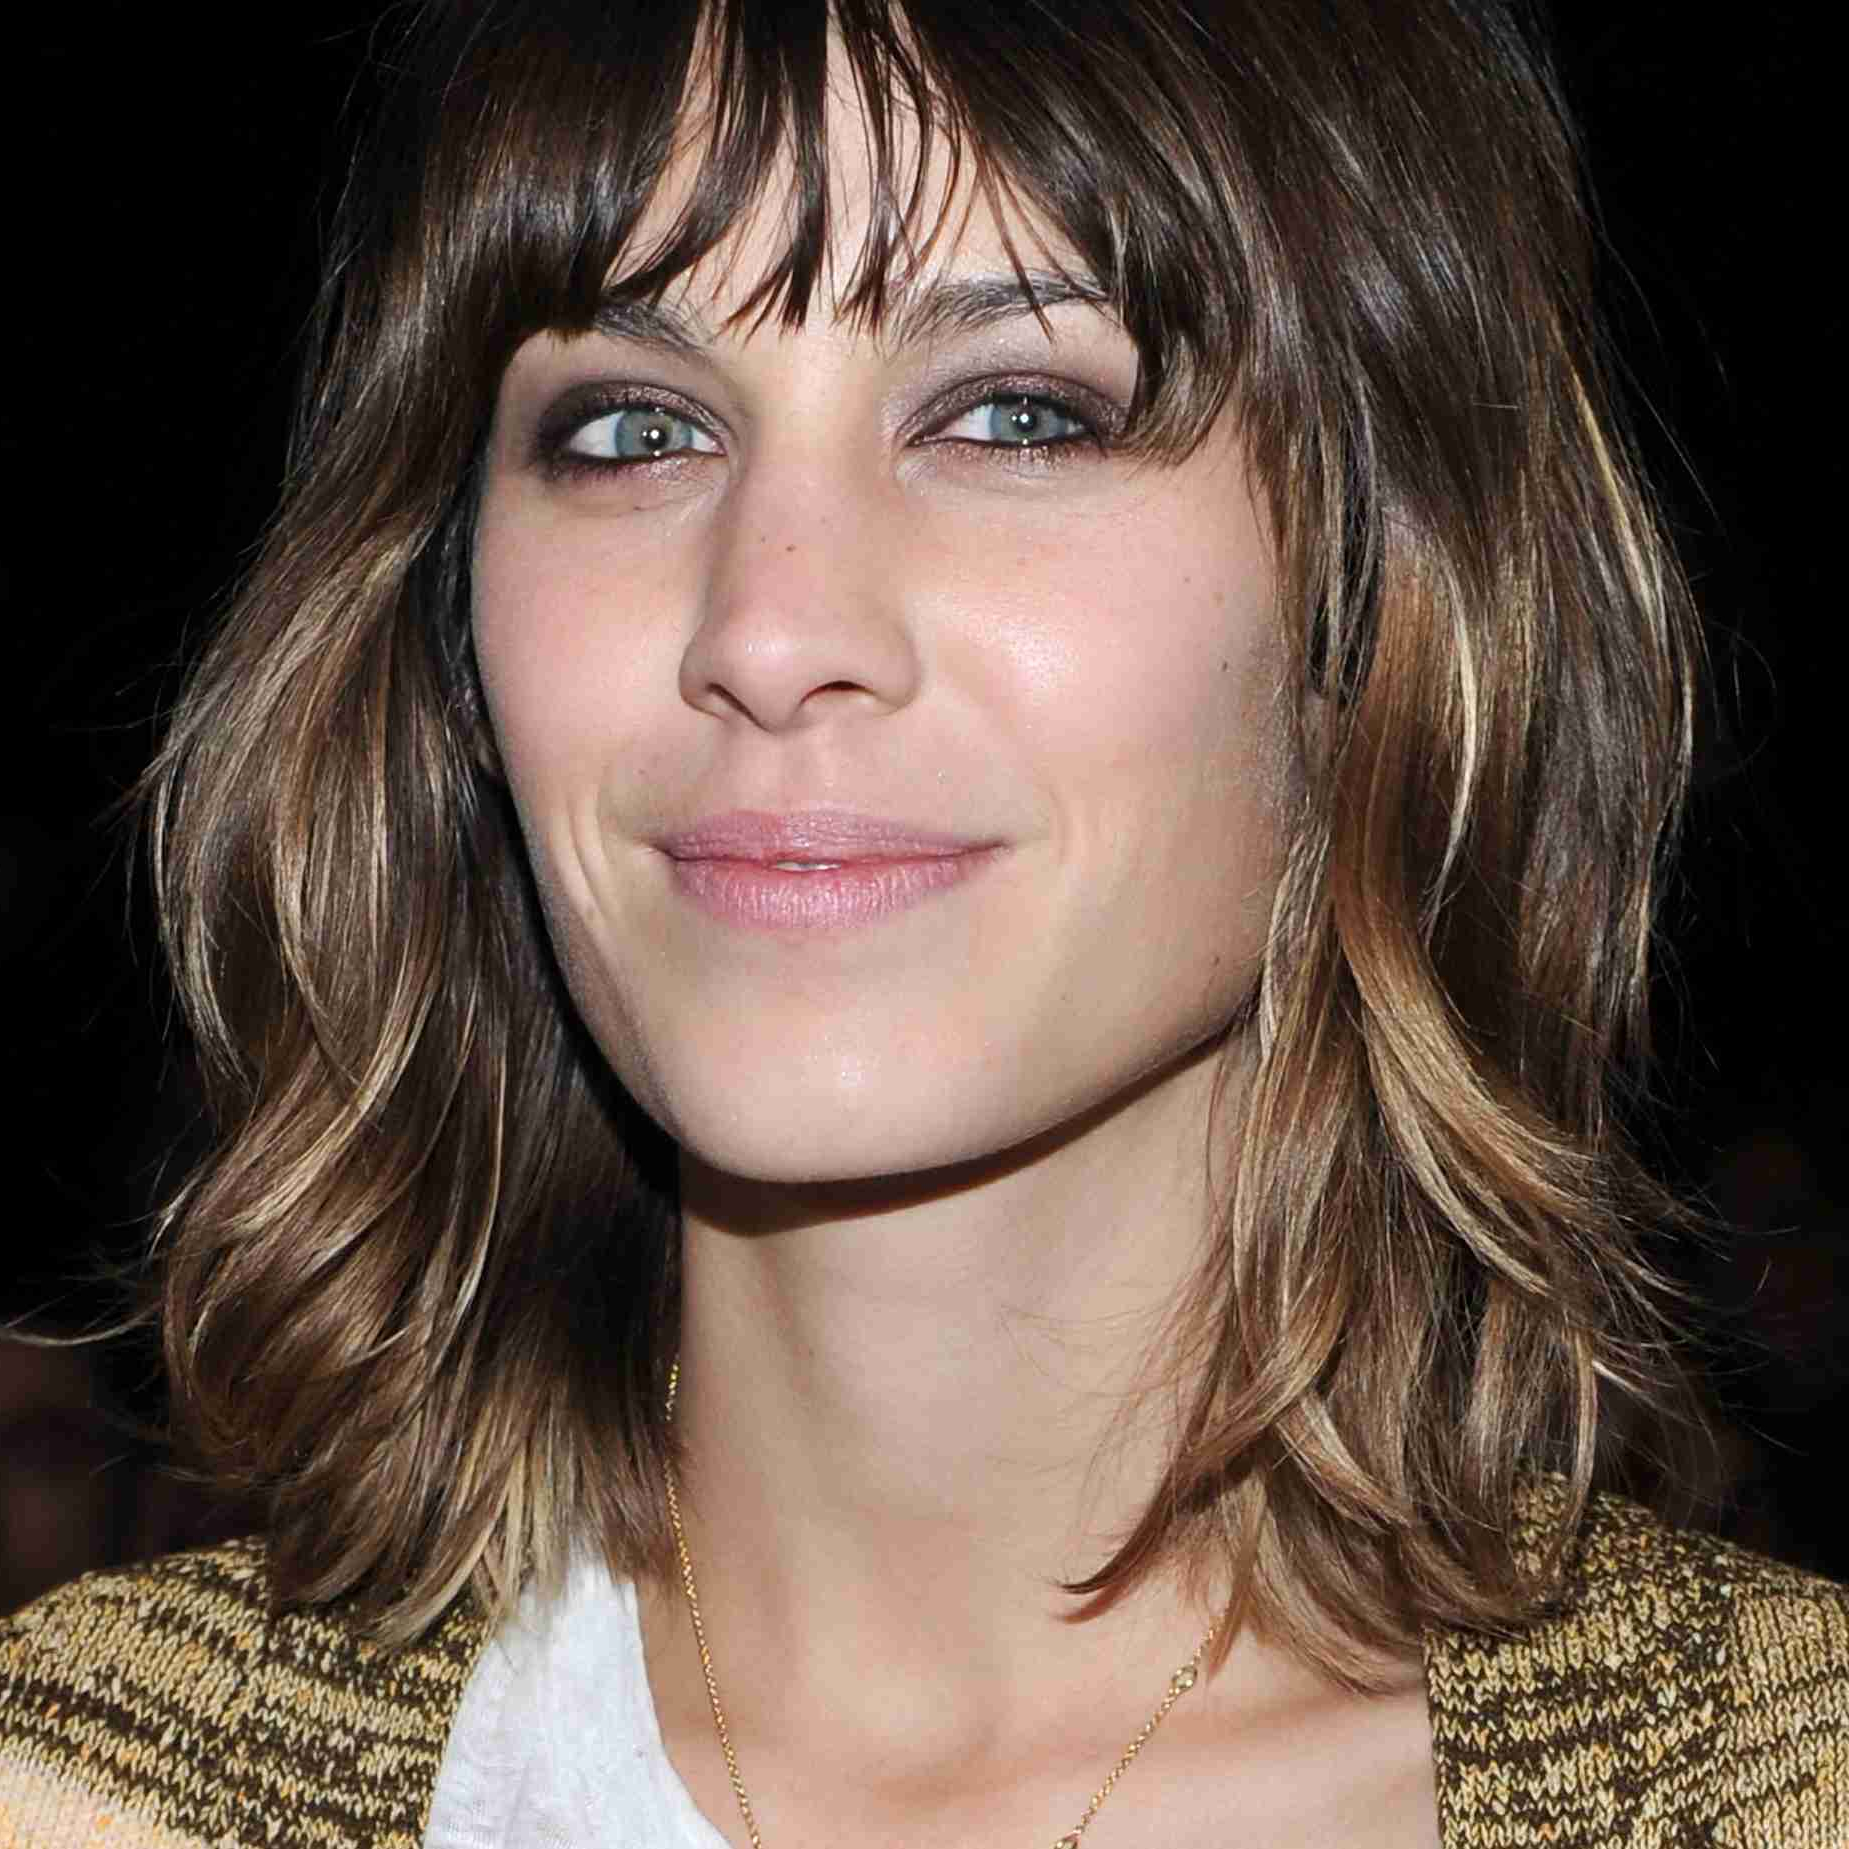 Can't Miss Shag Haircuts, From Short To Long Within Best And Newest Long Curly Blonde Shag Haircuts With Bangs (View 12 of 20)